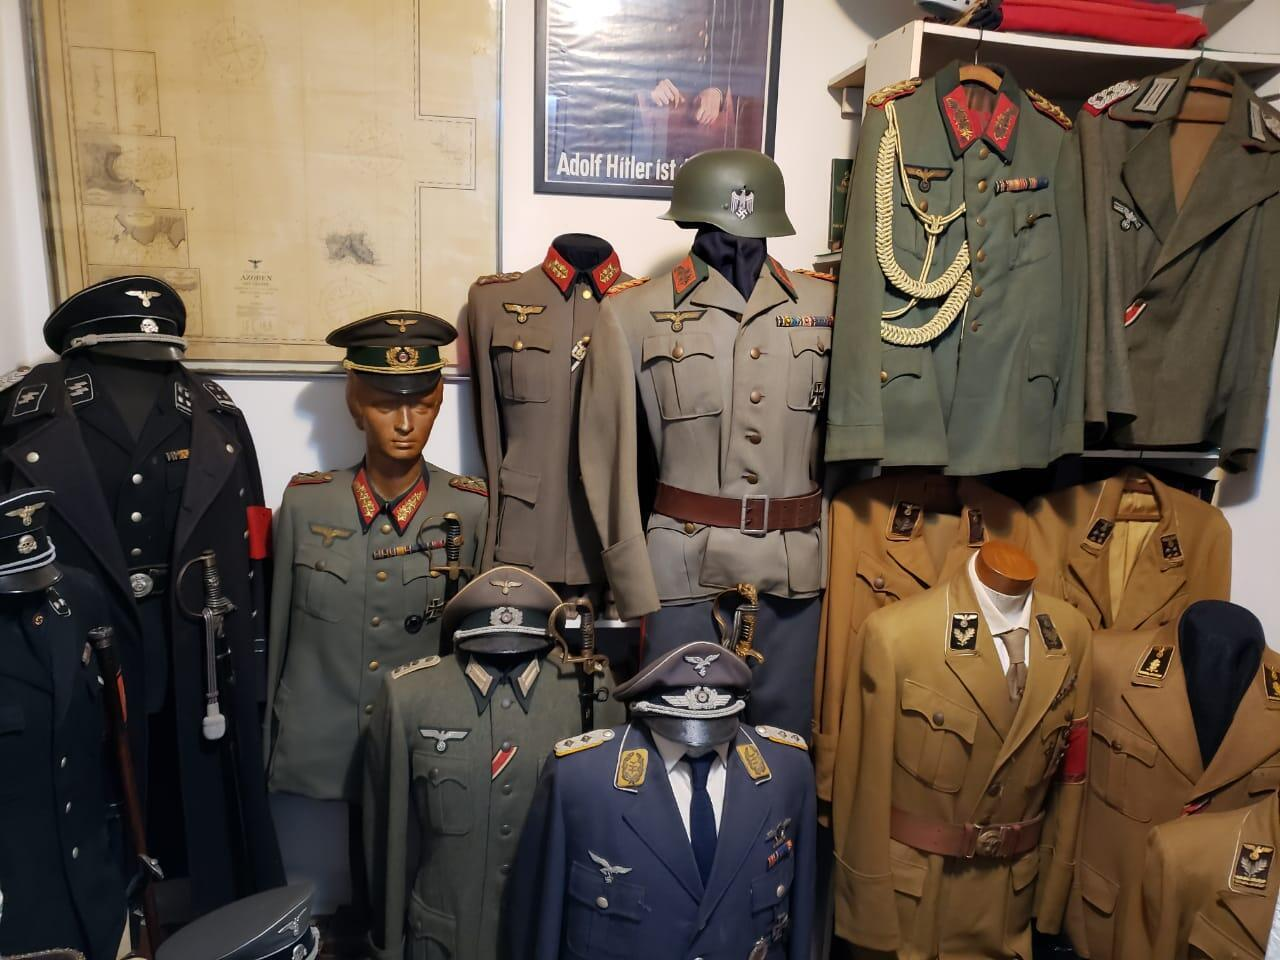 Handout picture released on October 6, 2021 by Rio de Janeiro Civil Police showing Nazi  uniforms found inside the house of a man suspected of molesting a 12-year-old boy in the Vargem Grande neighbourhood, Rio de Janeiro, Brazil.